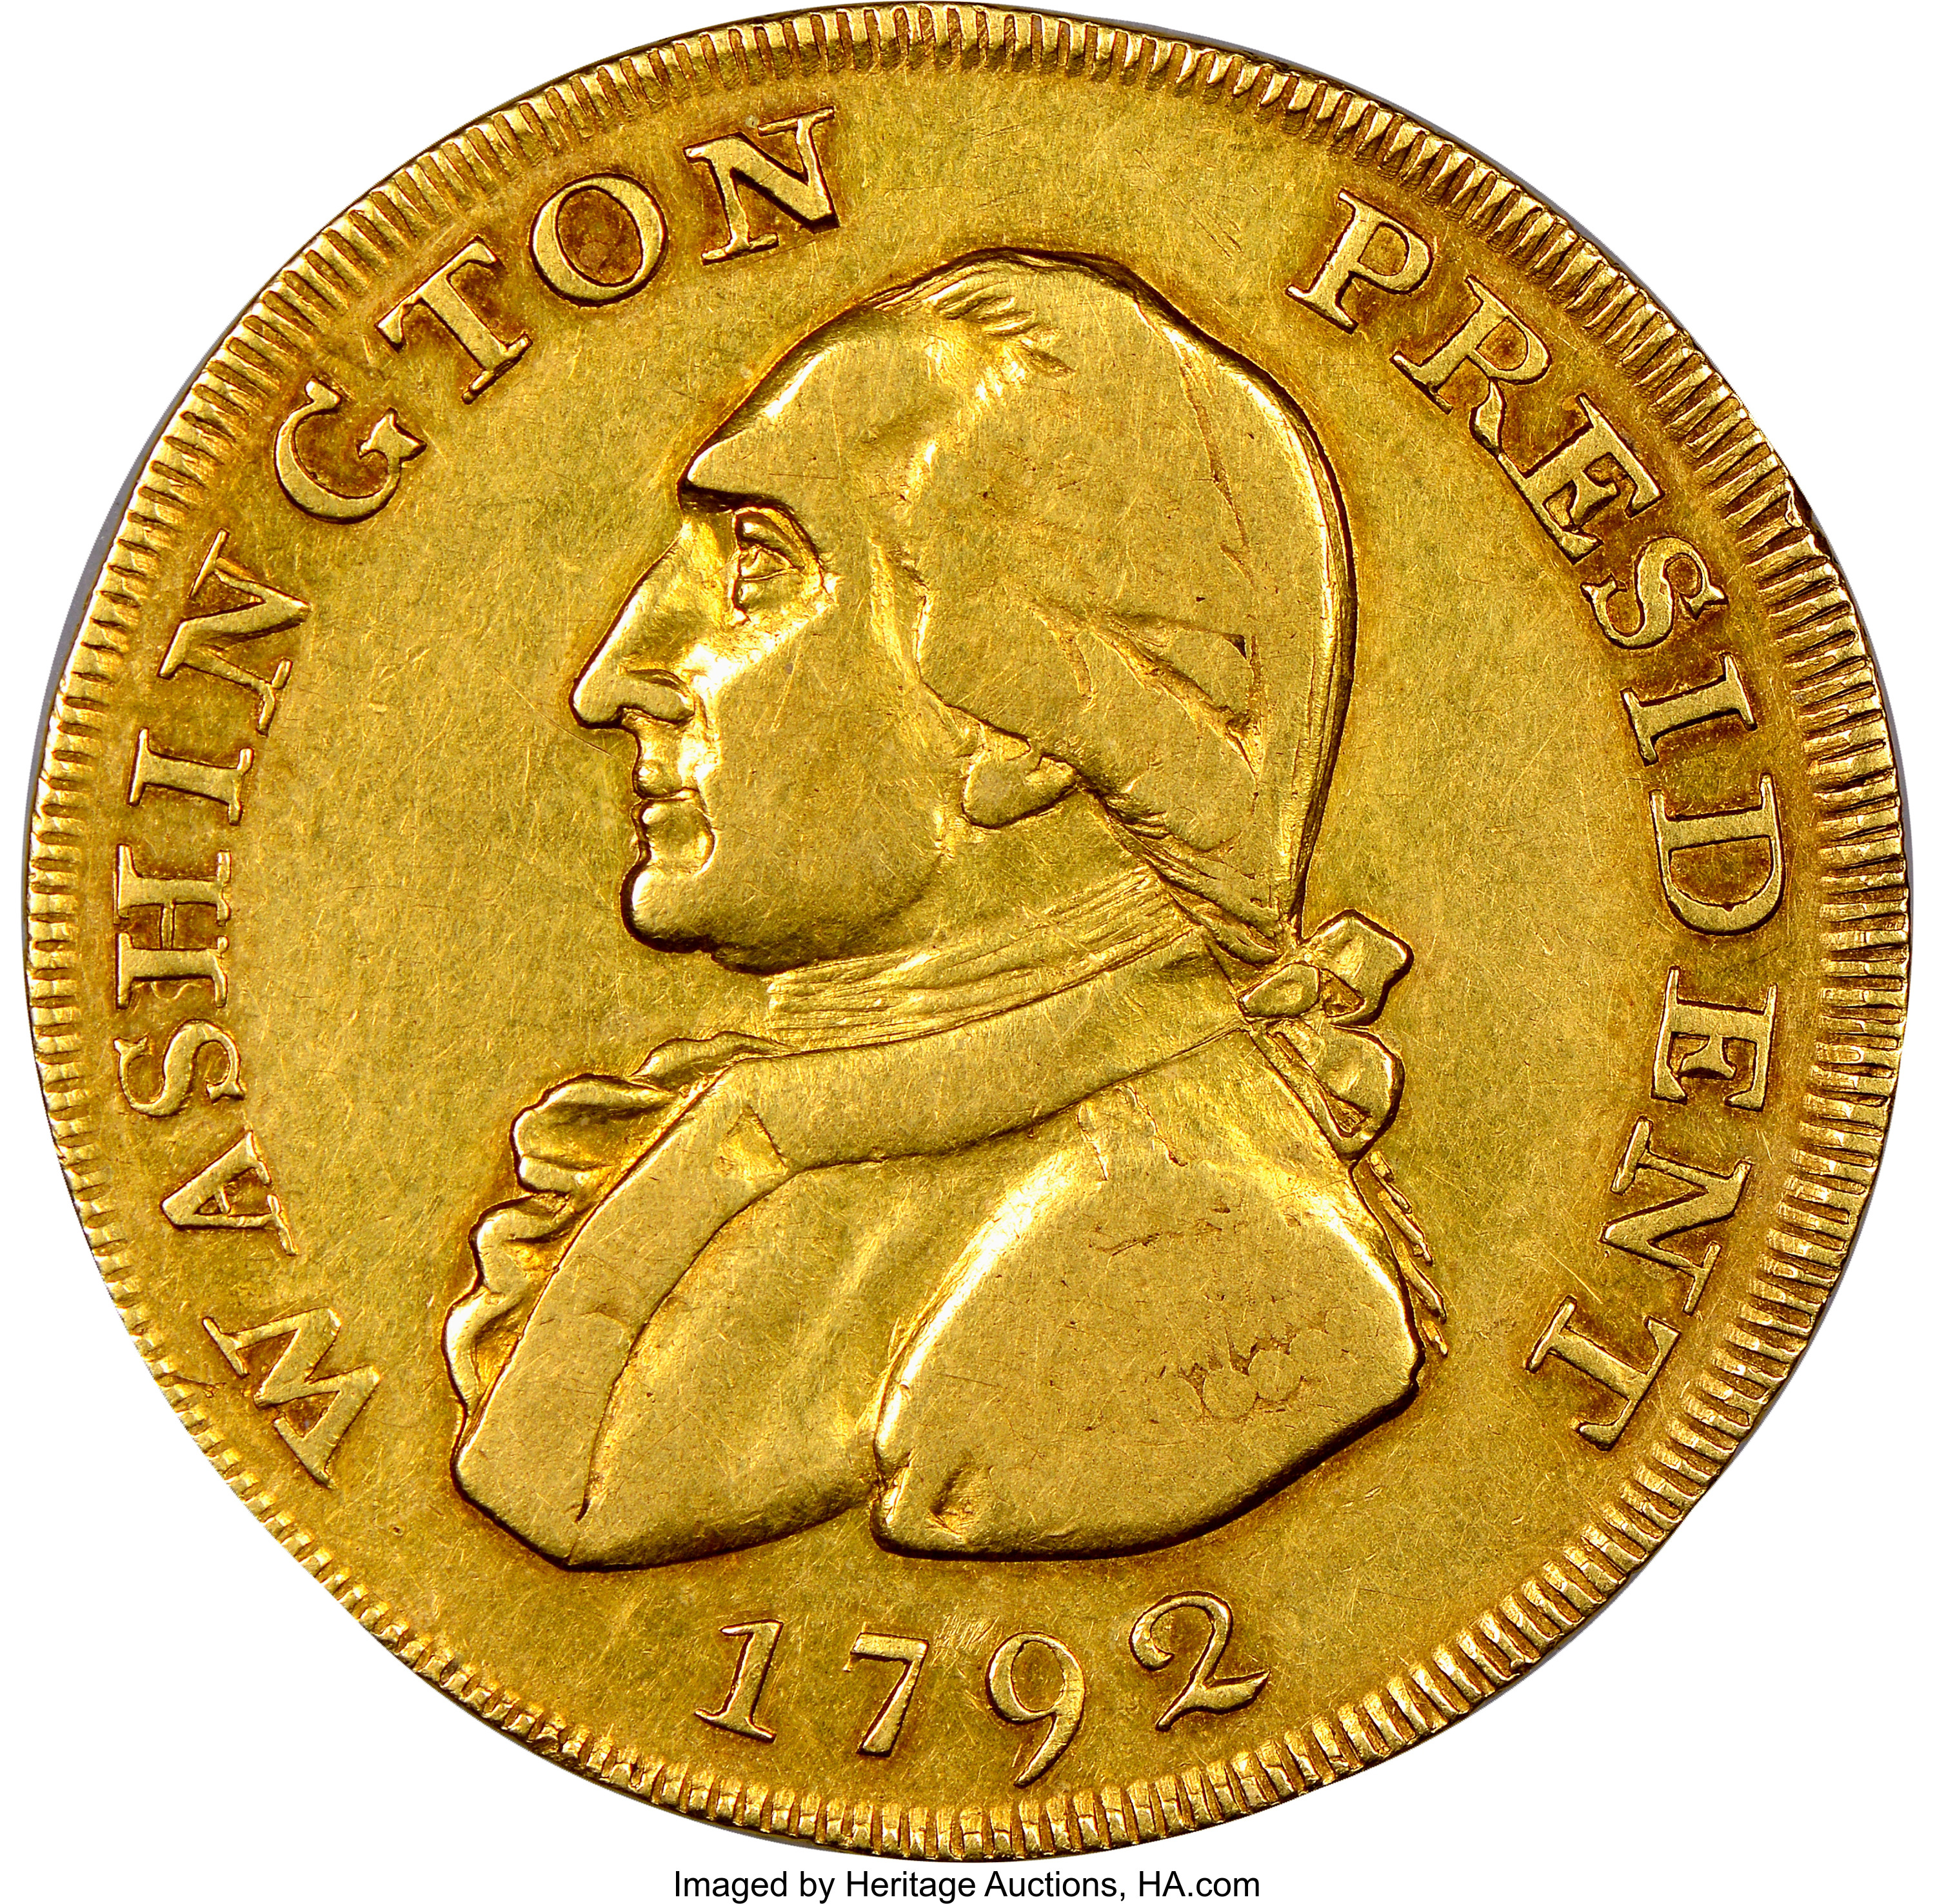 main image for Record Prices in 2018 U.S. Rare Coin  Market, Reports Professional Numismatists Guild